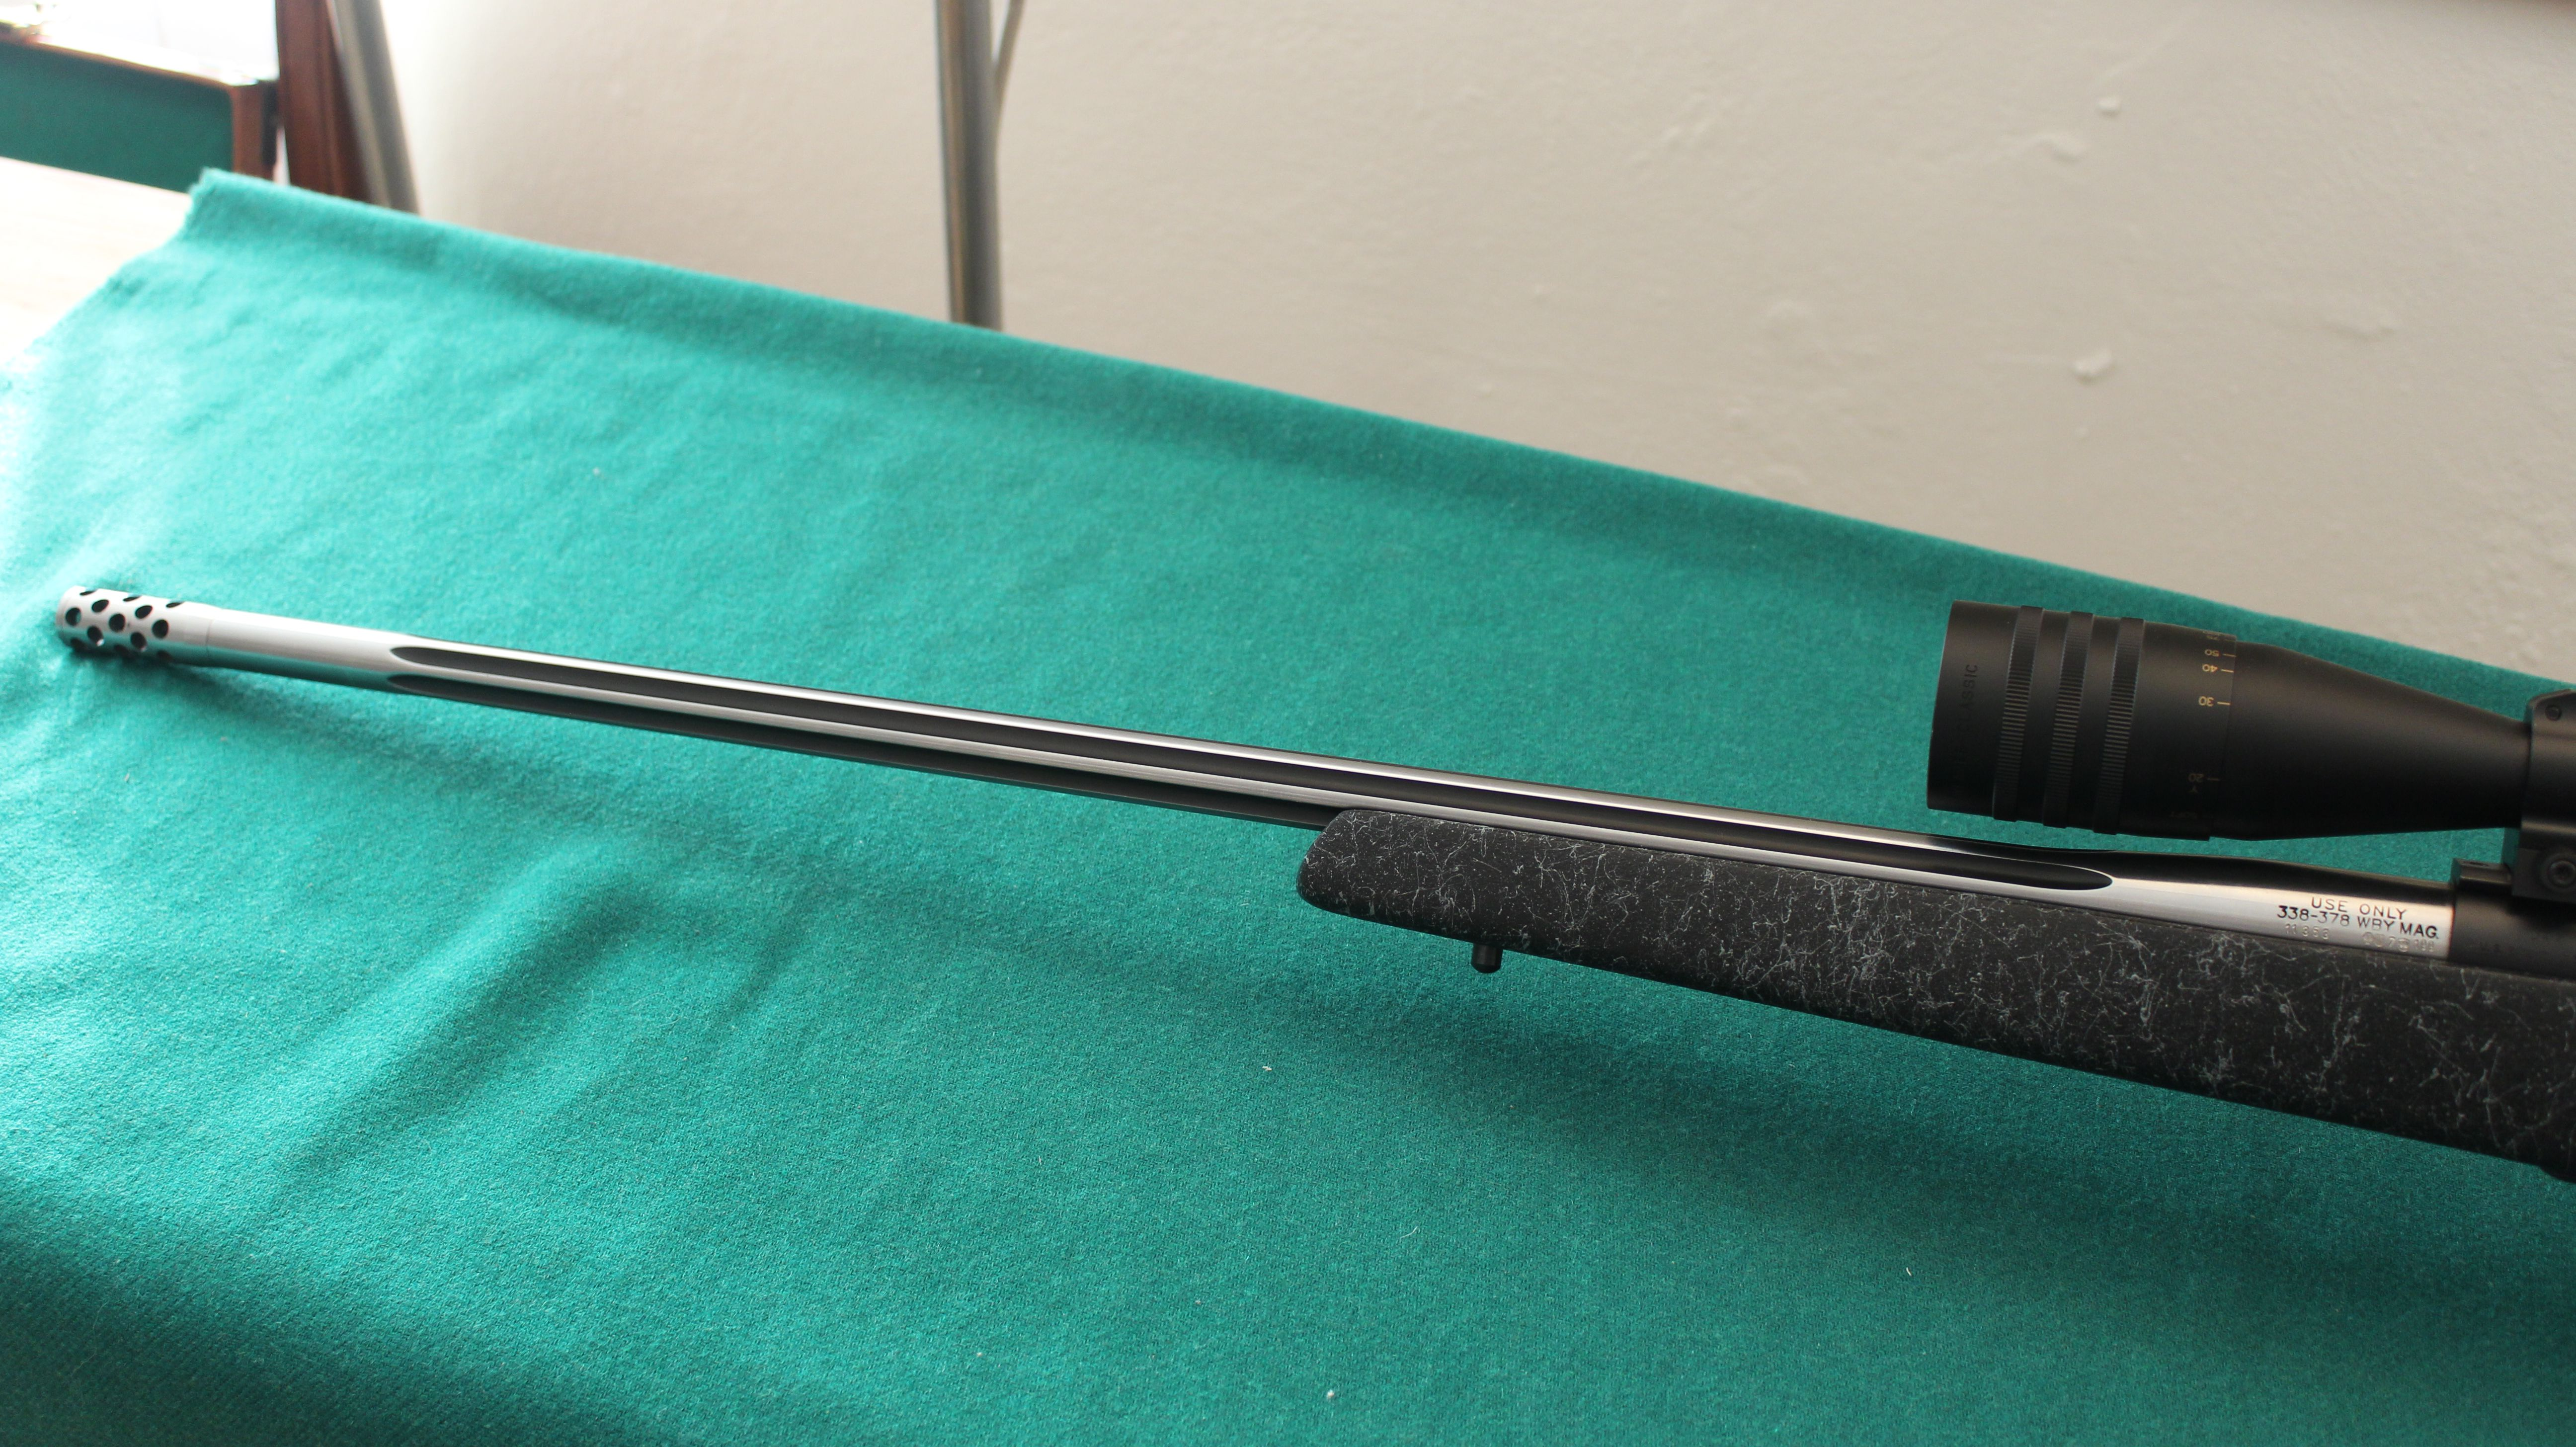 Carabina Otturatore Weatherby Mod. MARK V Cal. 338-378 WBY. MAG.